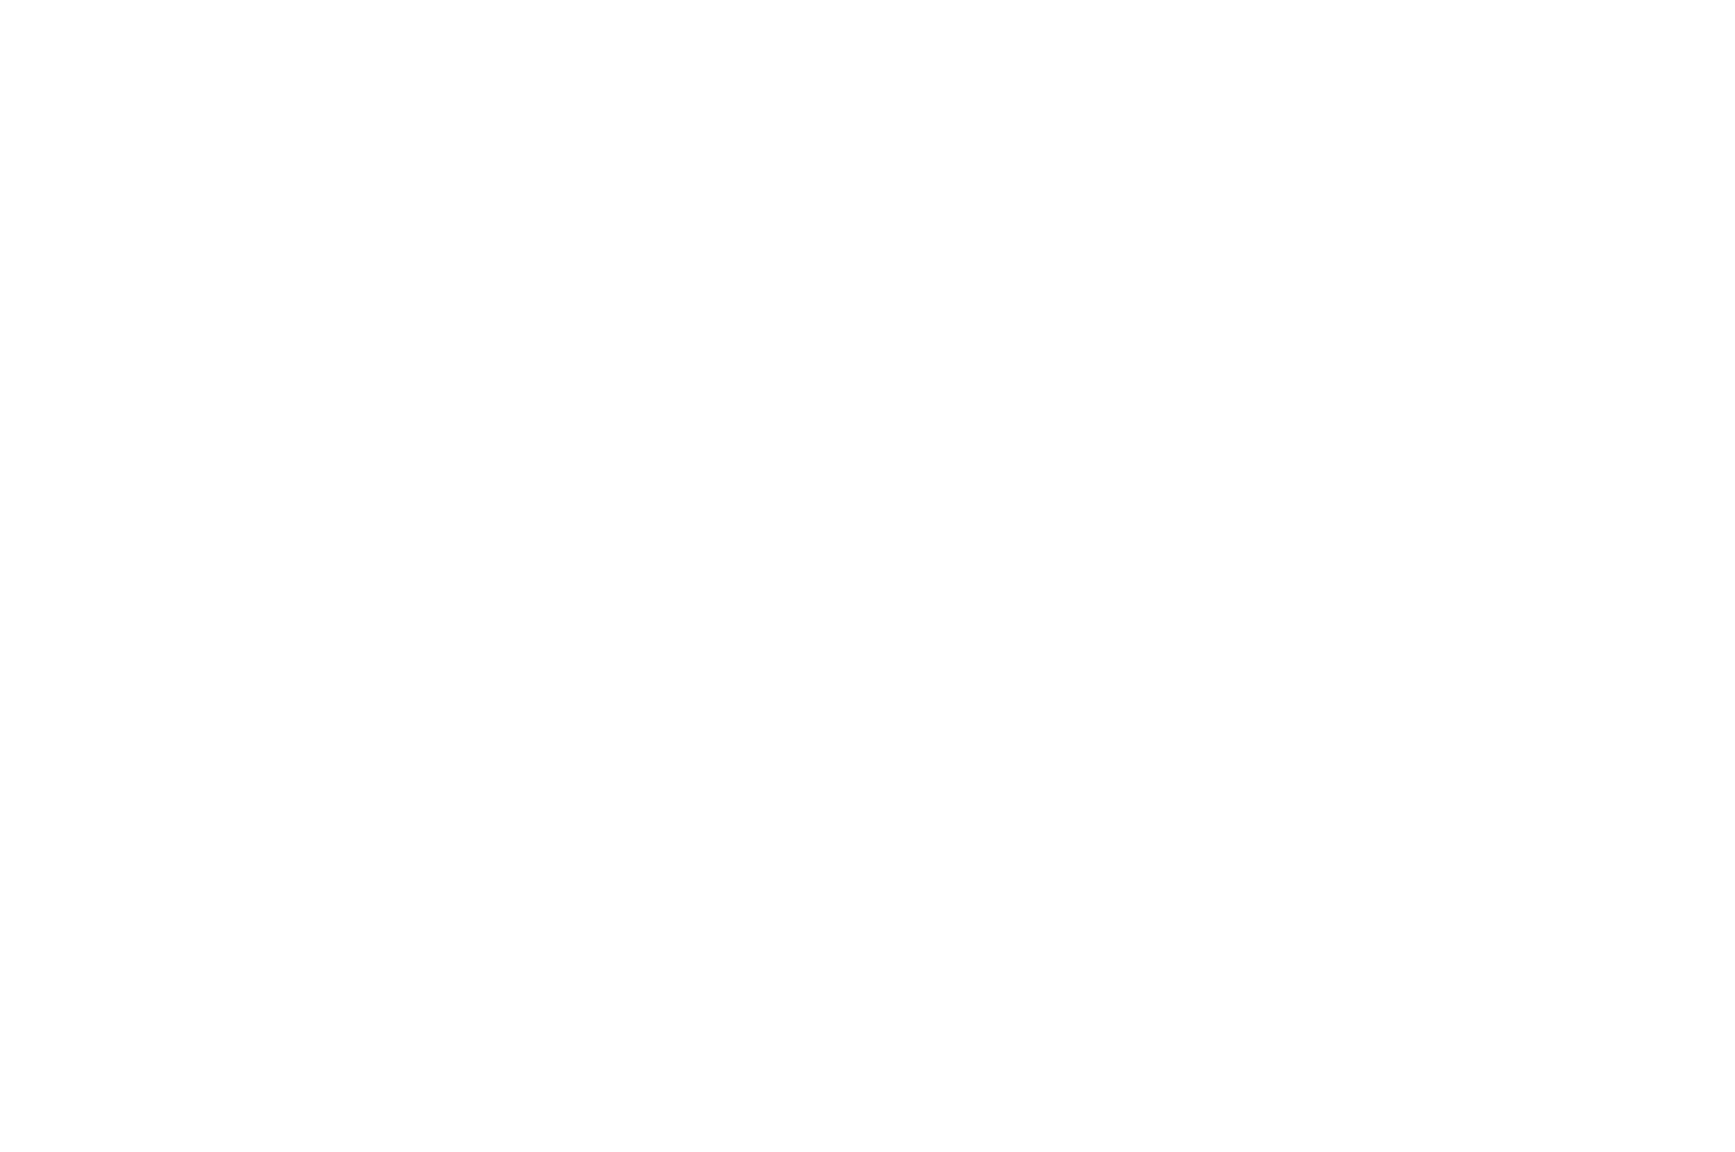 OFFICIAL SELECTION - Burbank International Film Festival - 2018.png